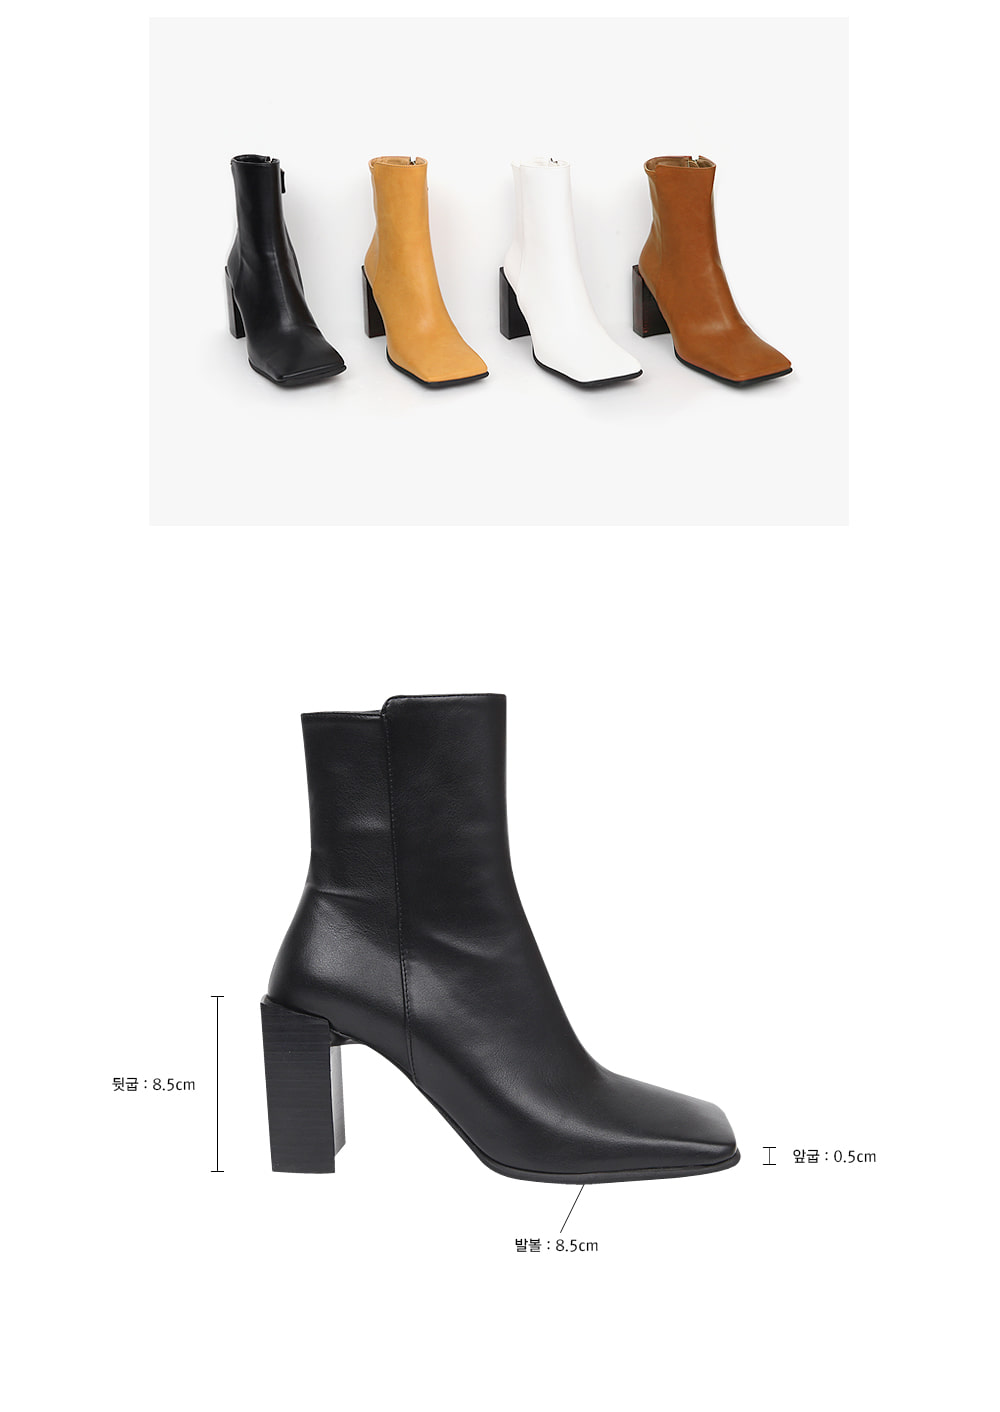 square shape ankle boots